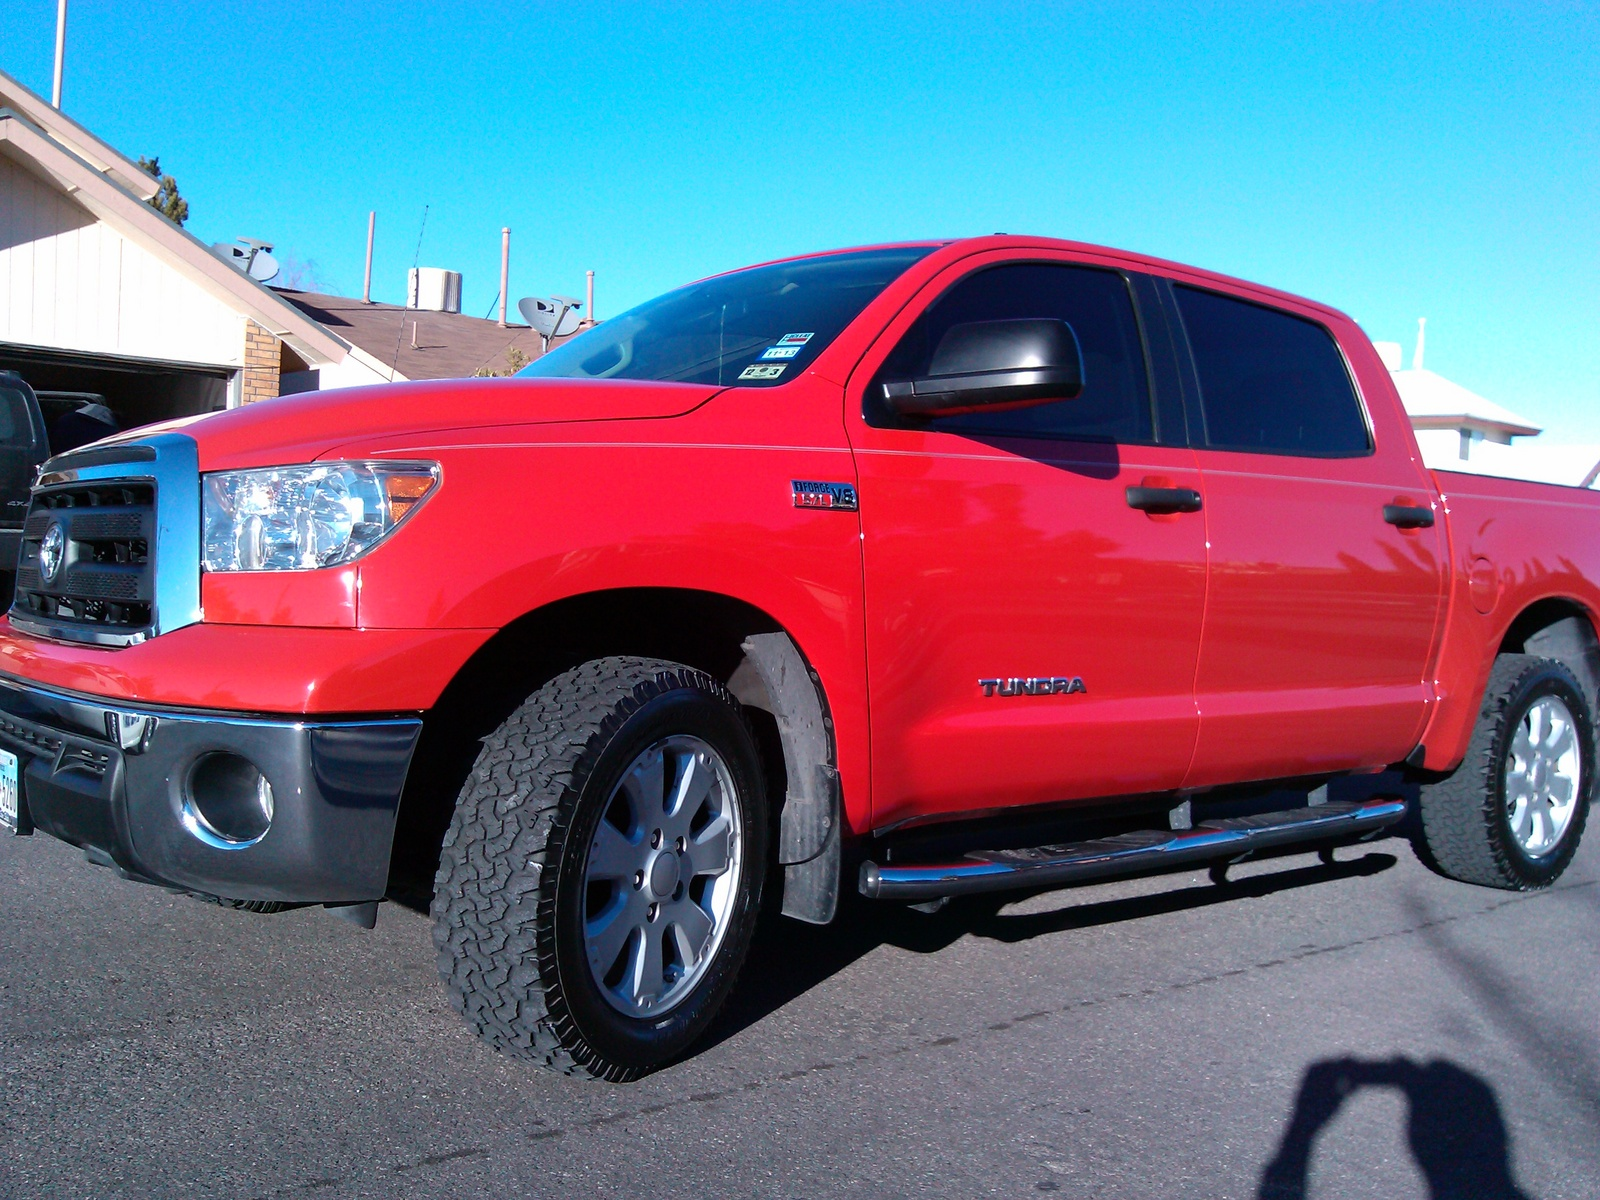 2010 Toyota Tundra CrewMax - Picture of 2010 Toyota Tundra ...